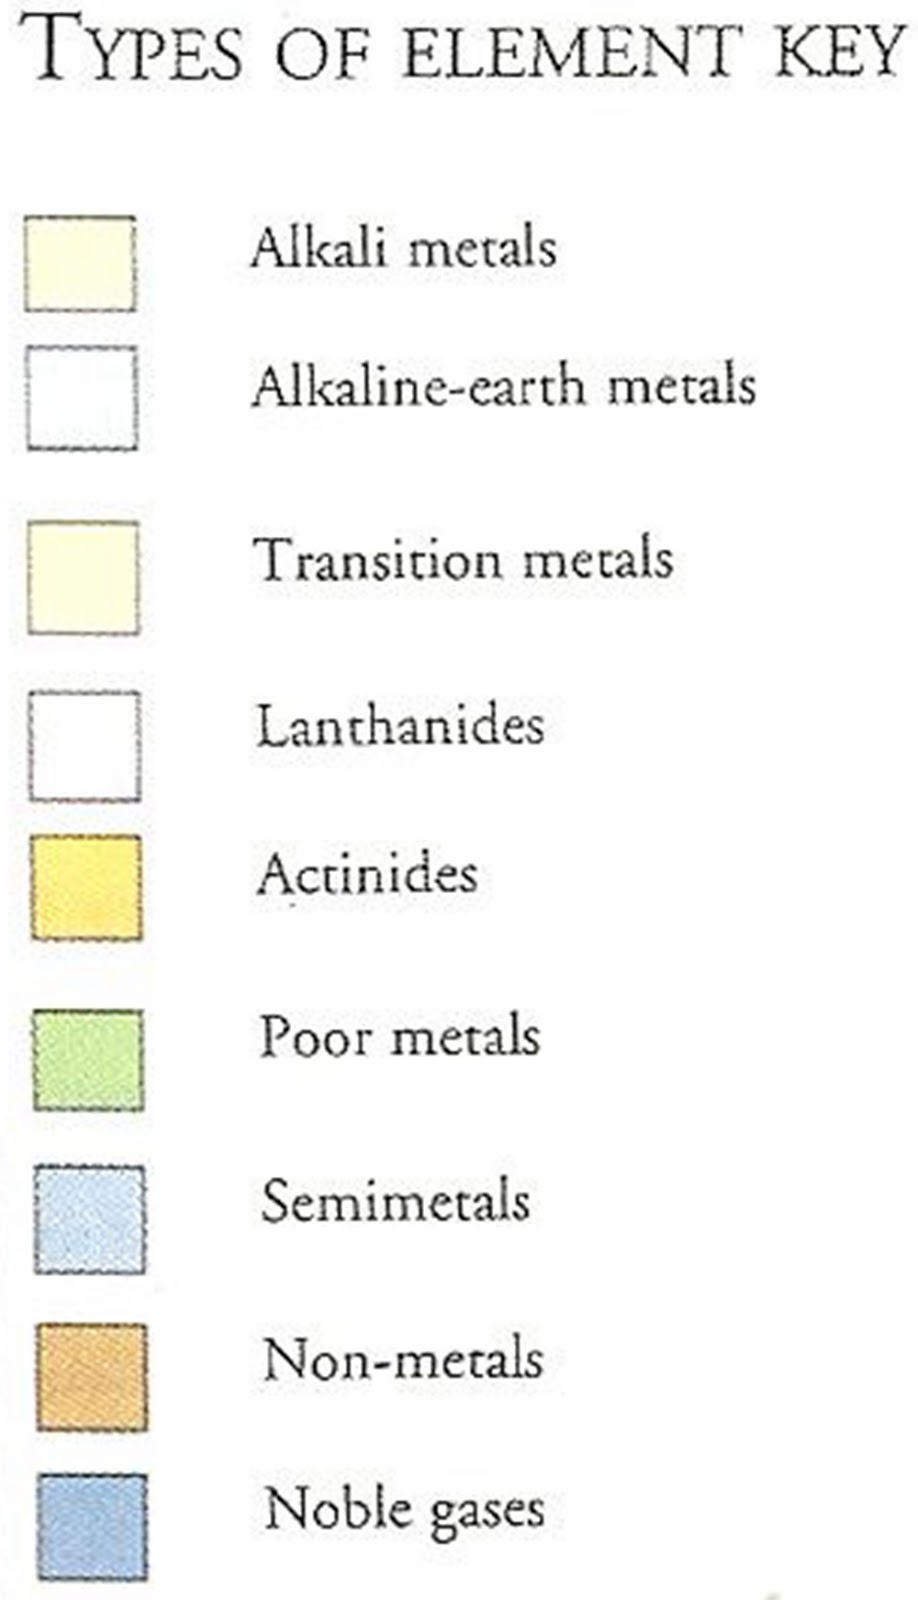 Manash subhaditya edusoft periodic table pictorial journey of periodic table pictorial journey of metals part 2 urtaz Gallery